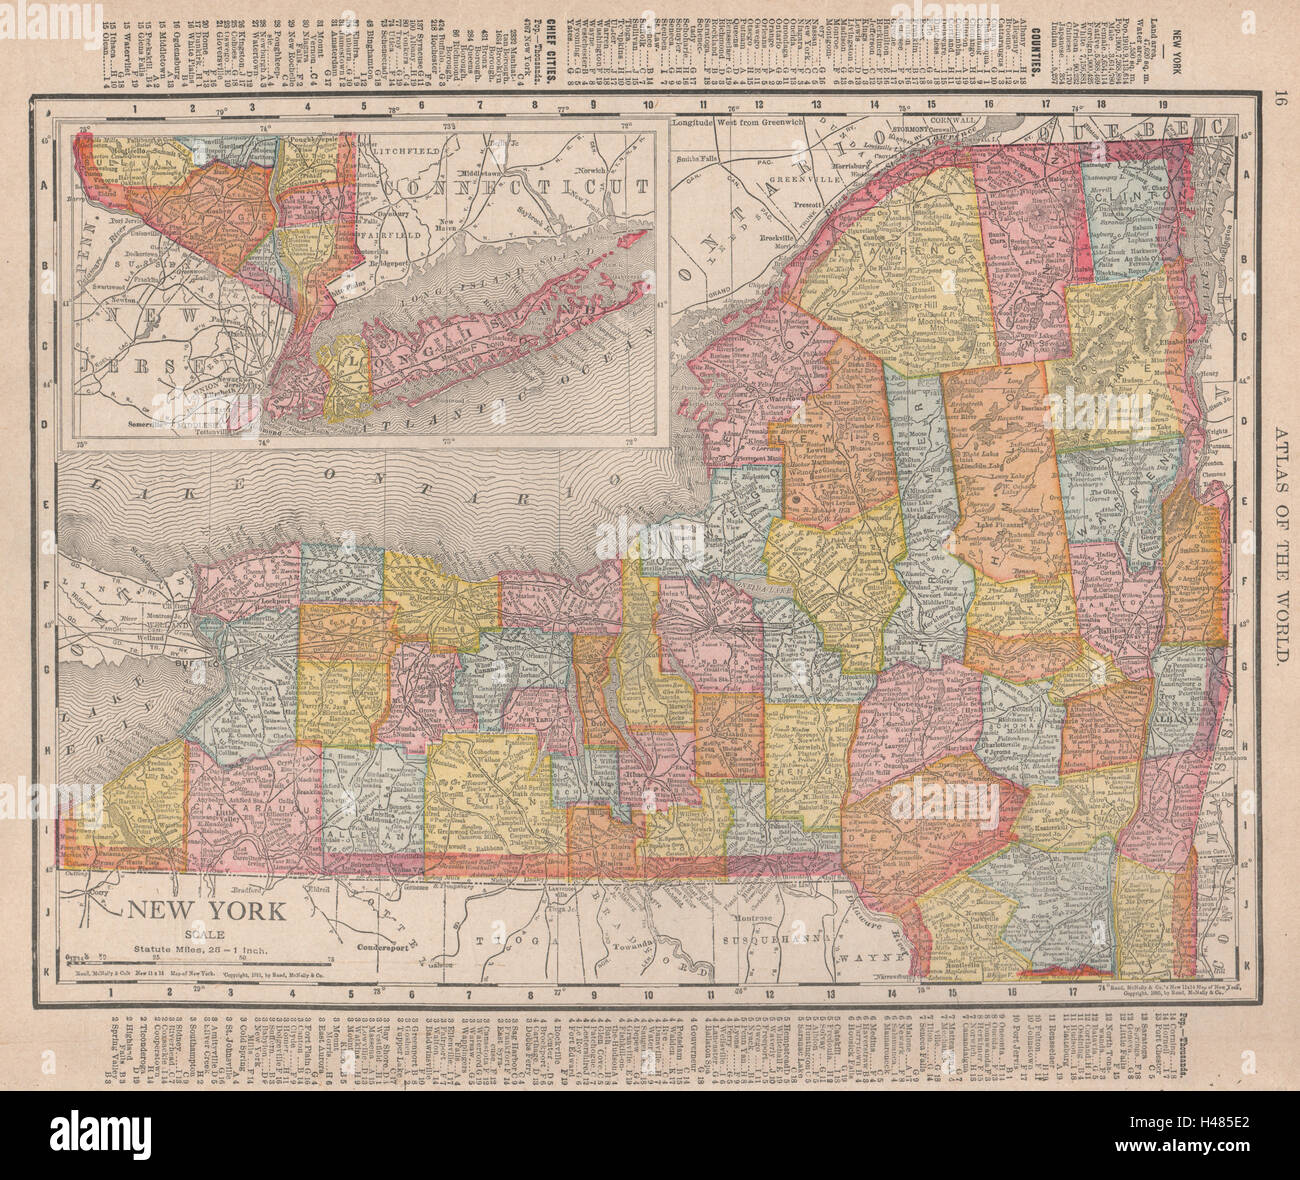 New York state map showing counties. RAND MCNALLY 1912 old ... Randy Mcnally State Maps on brown maps, white maps, united states maps, motorcycle road maps,